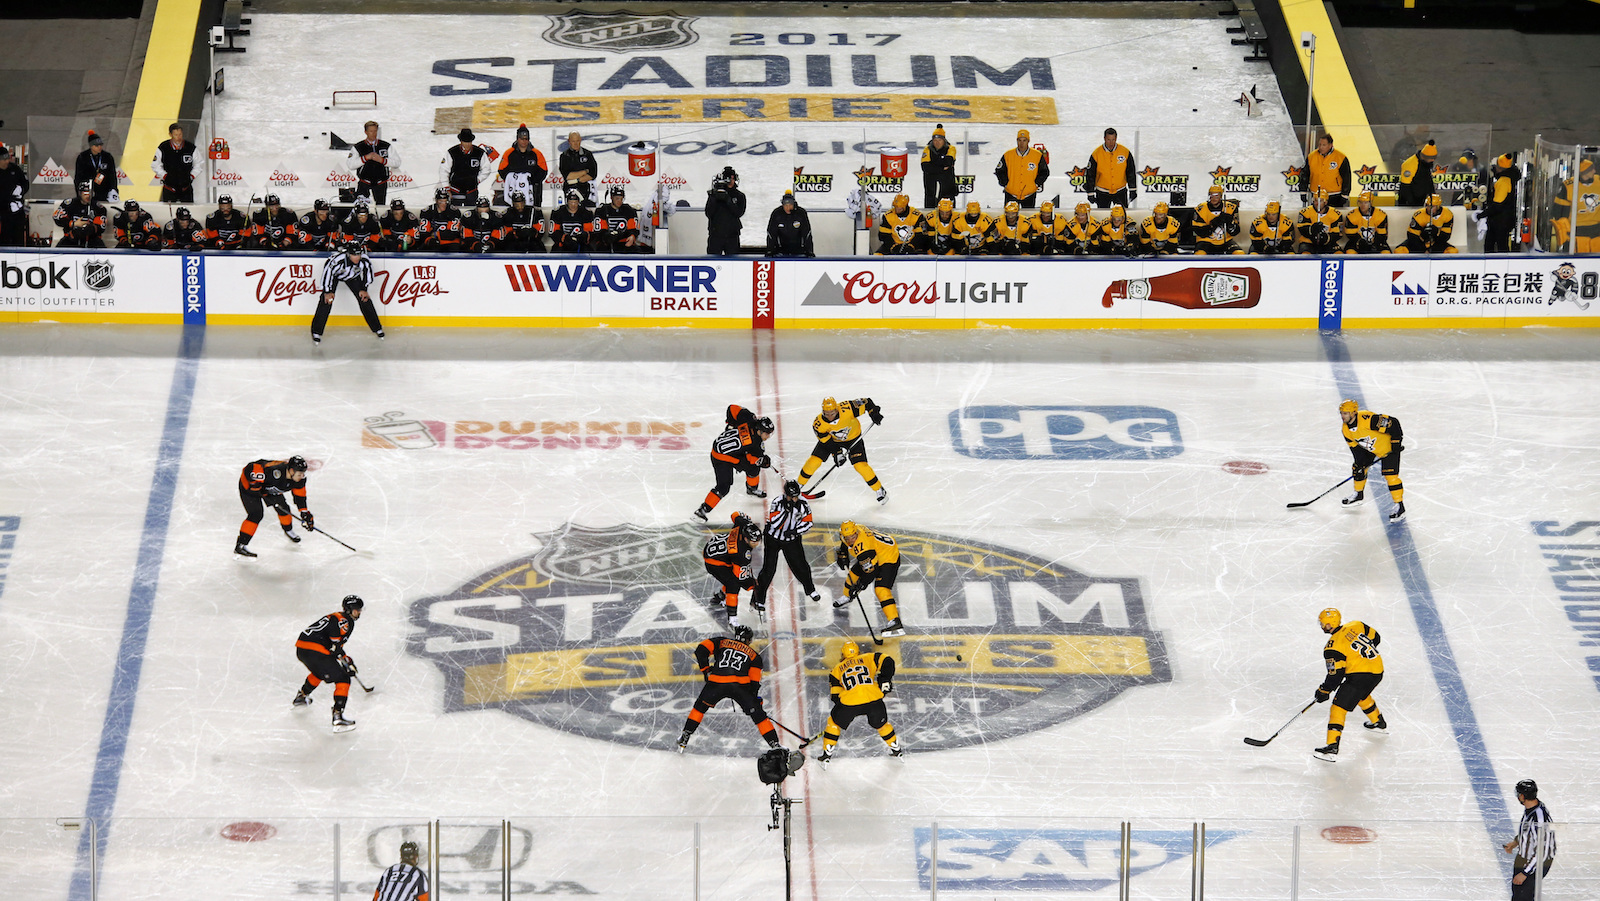 The Philadelphia Flyers and Pittsburgh Penguins get ready for the start of an NHL Stadium Series hockey game at Heinz Field in Pittsburgh, Saturday, Feb. 25, 2017. (AP Photo/Gene J. Puskar)